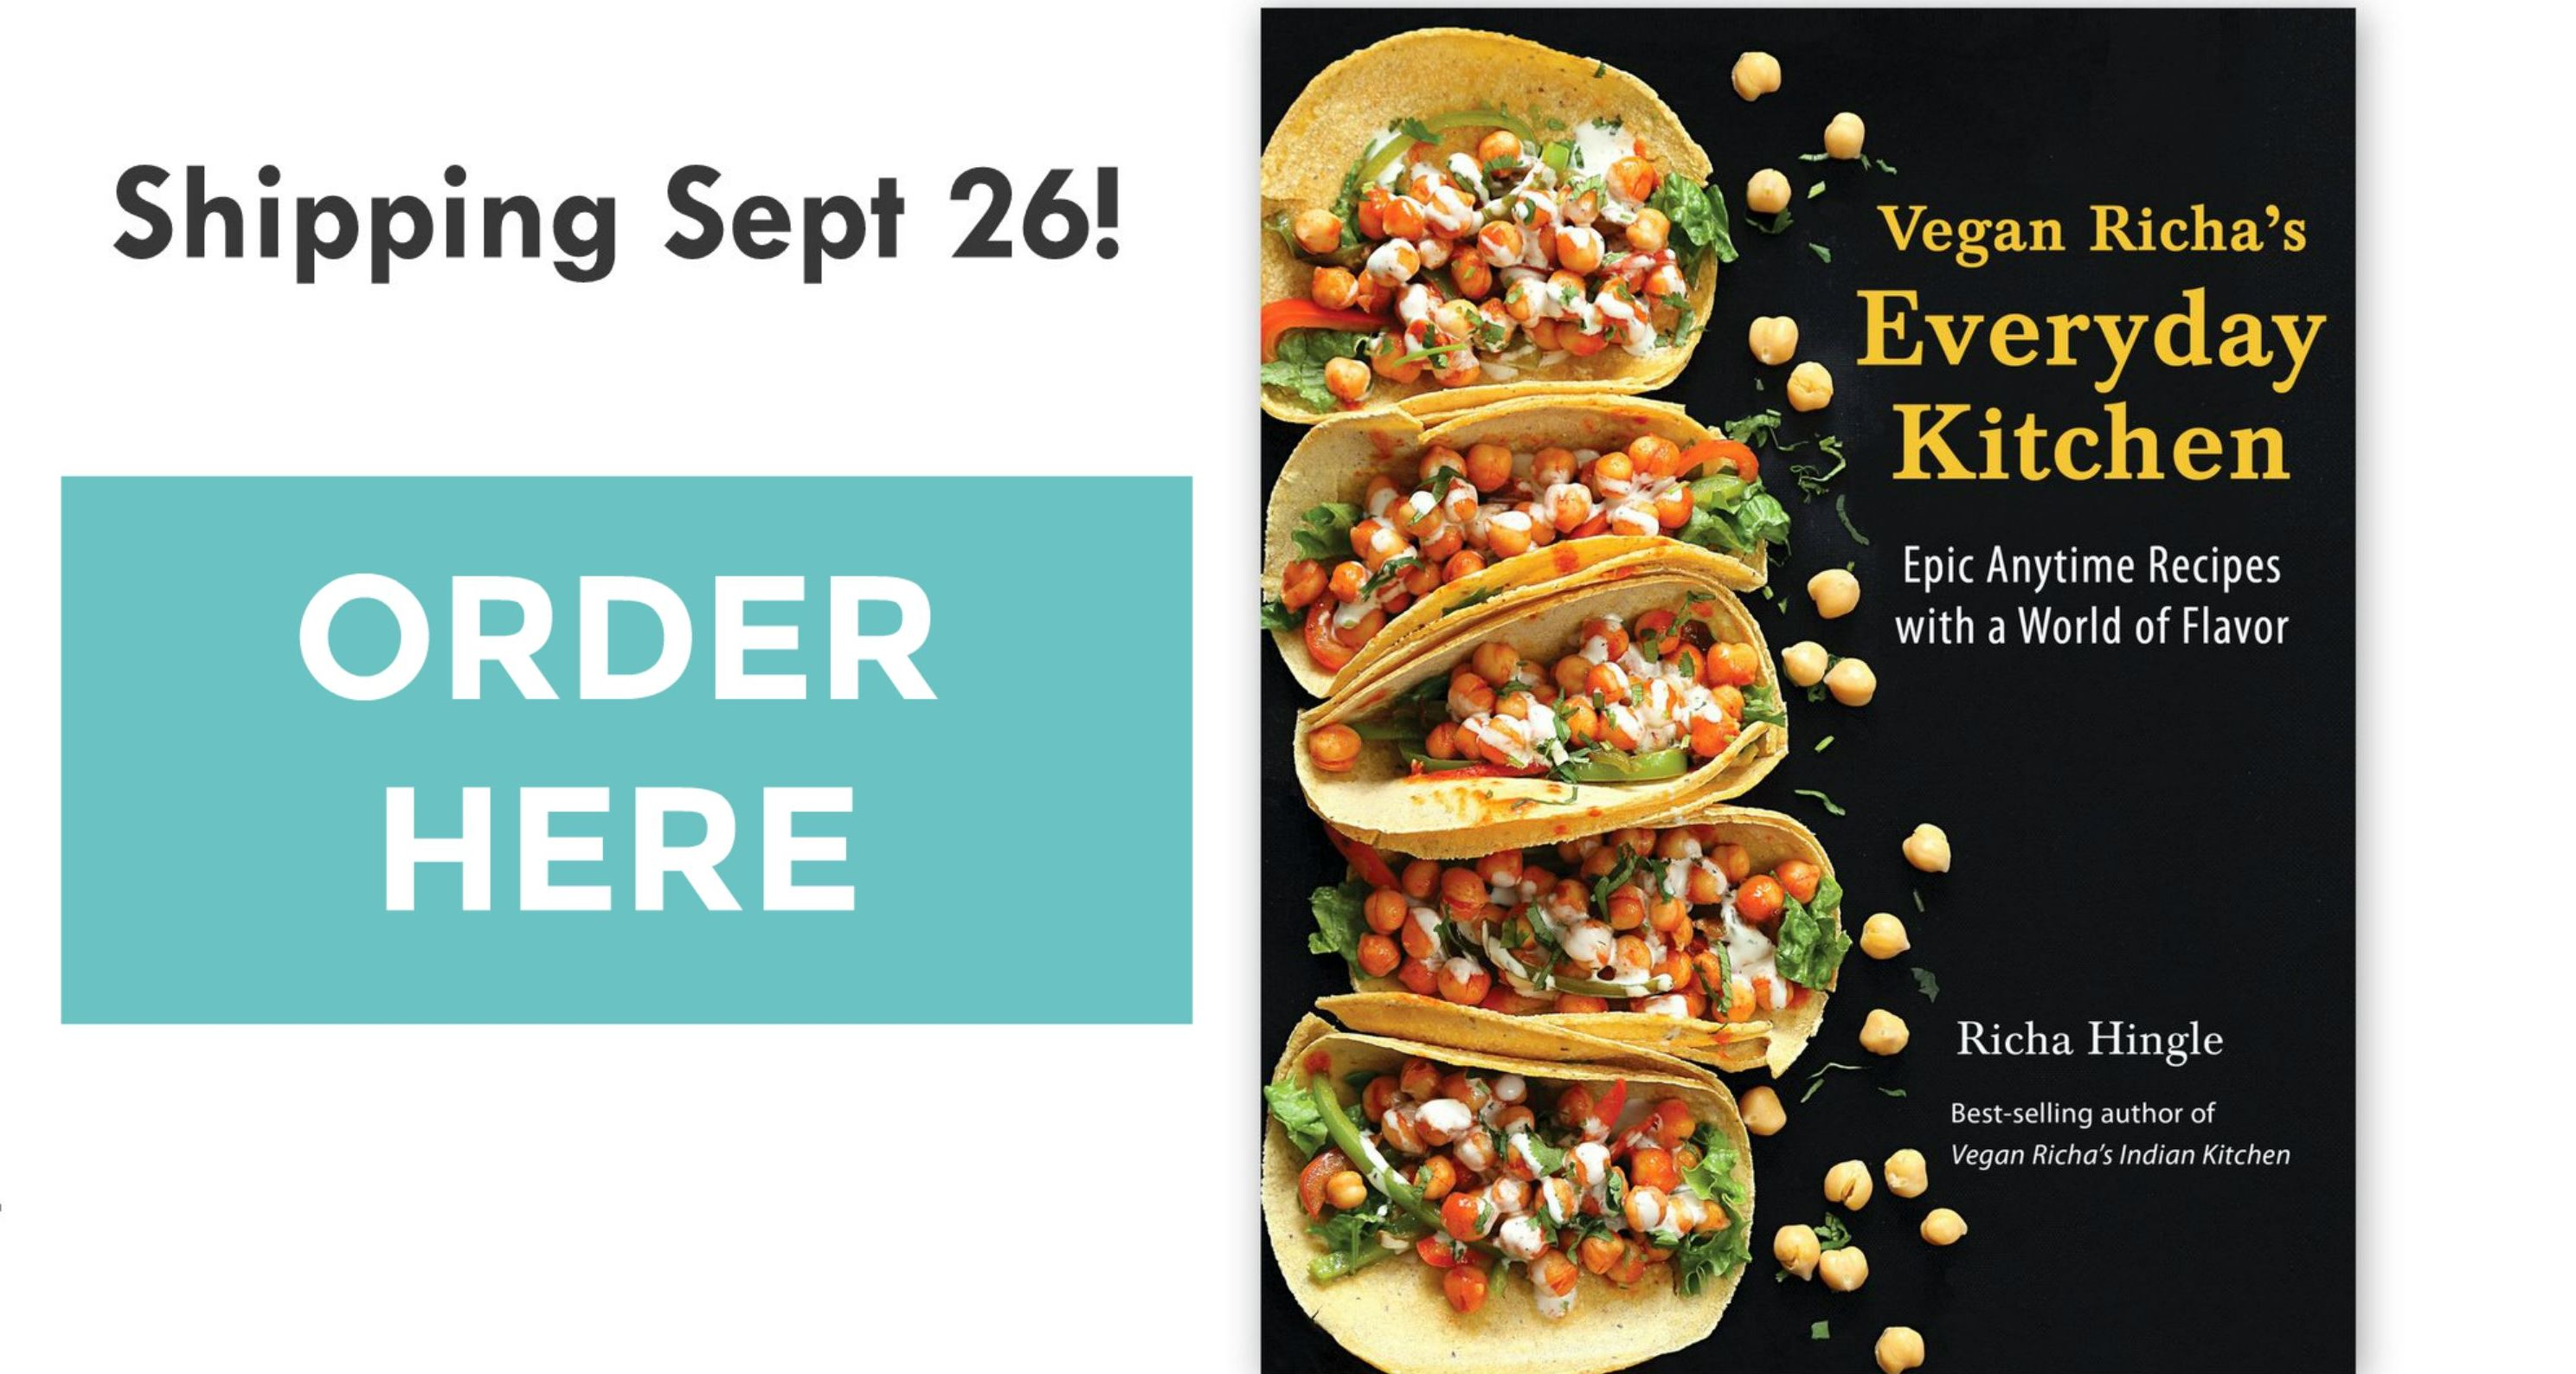 Vegan Richa's Everyday Kitchen Cookbook, Now Shipping.